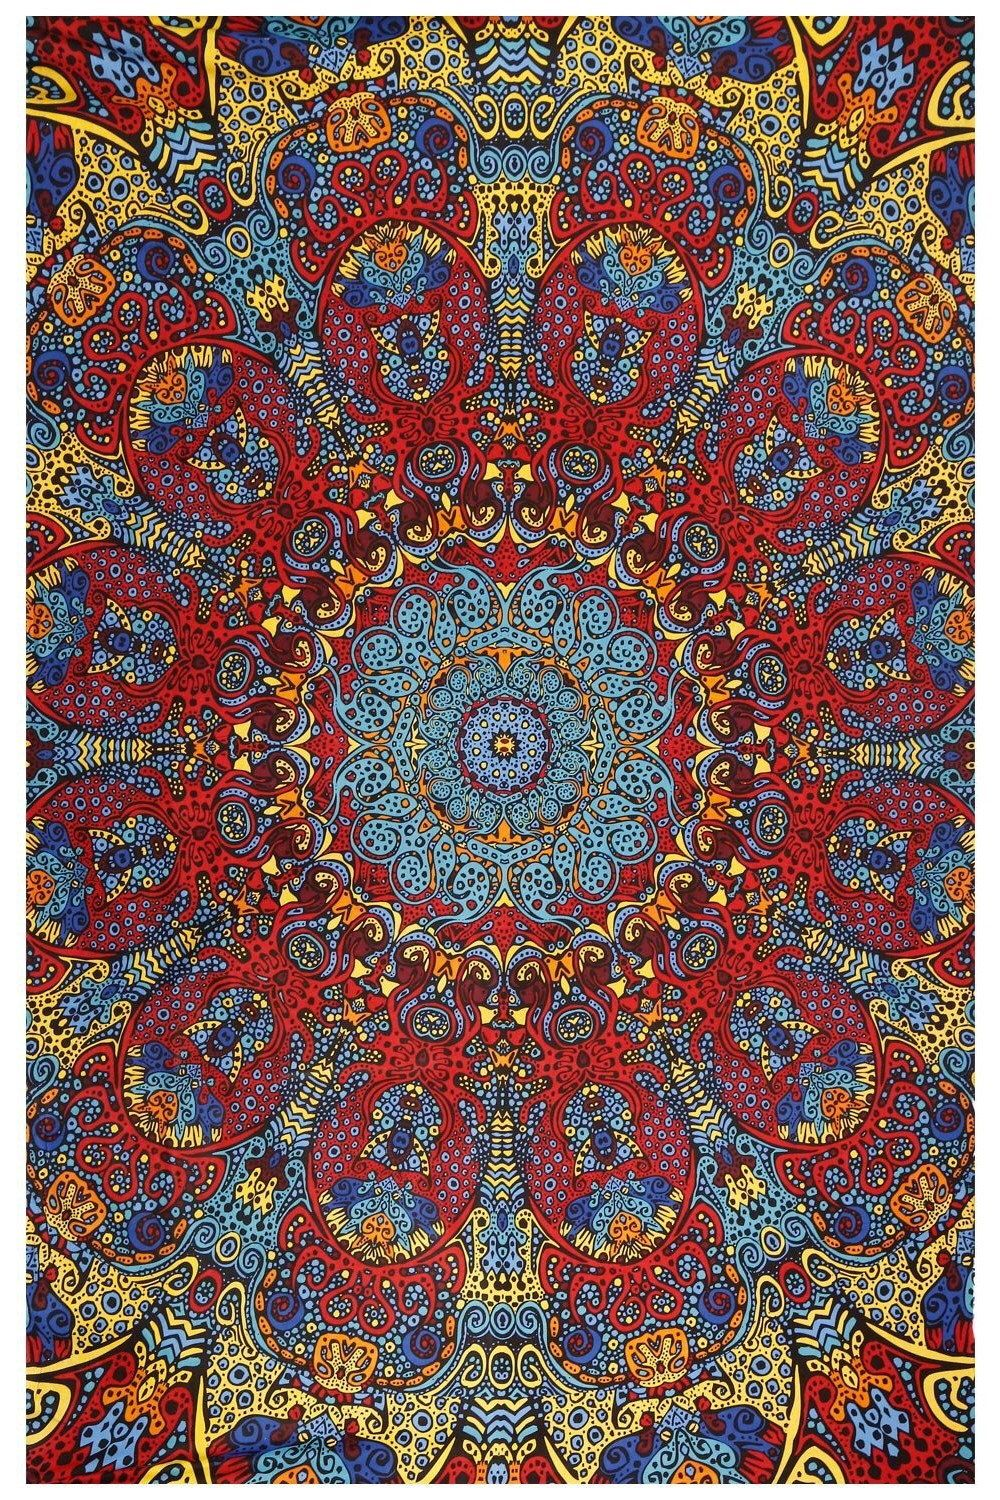 3d Psychedelic Sunburst Tapestry Glow in the Dark 60 x 90